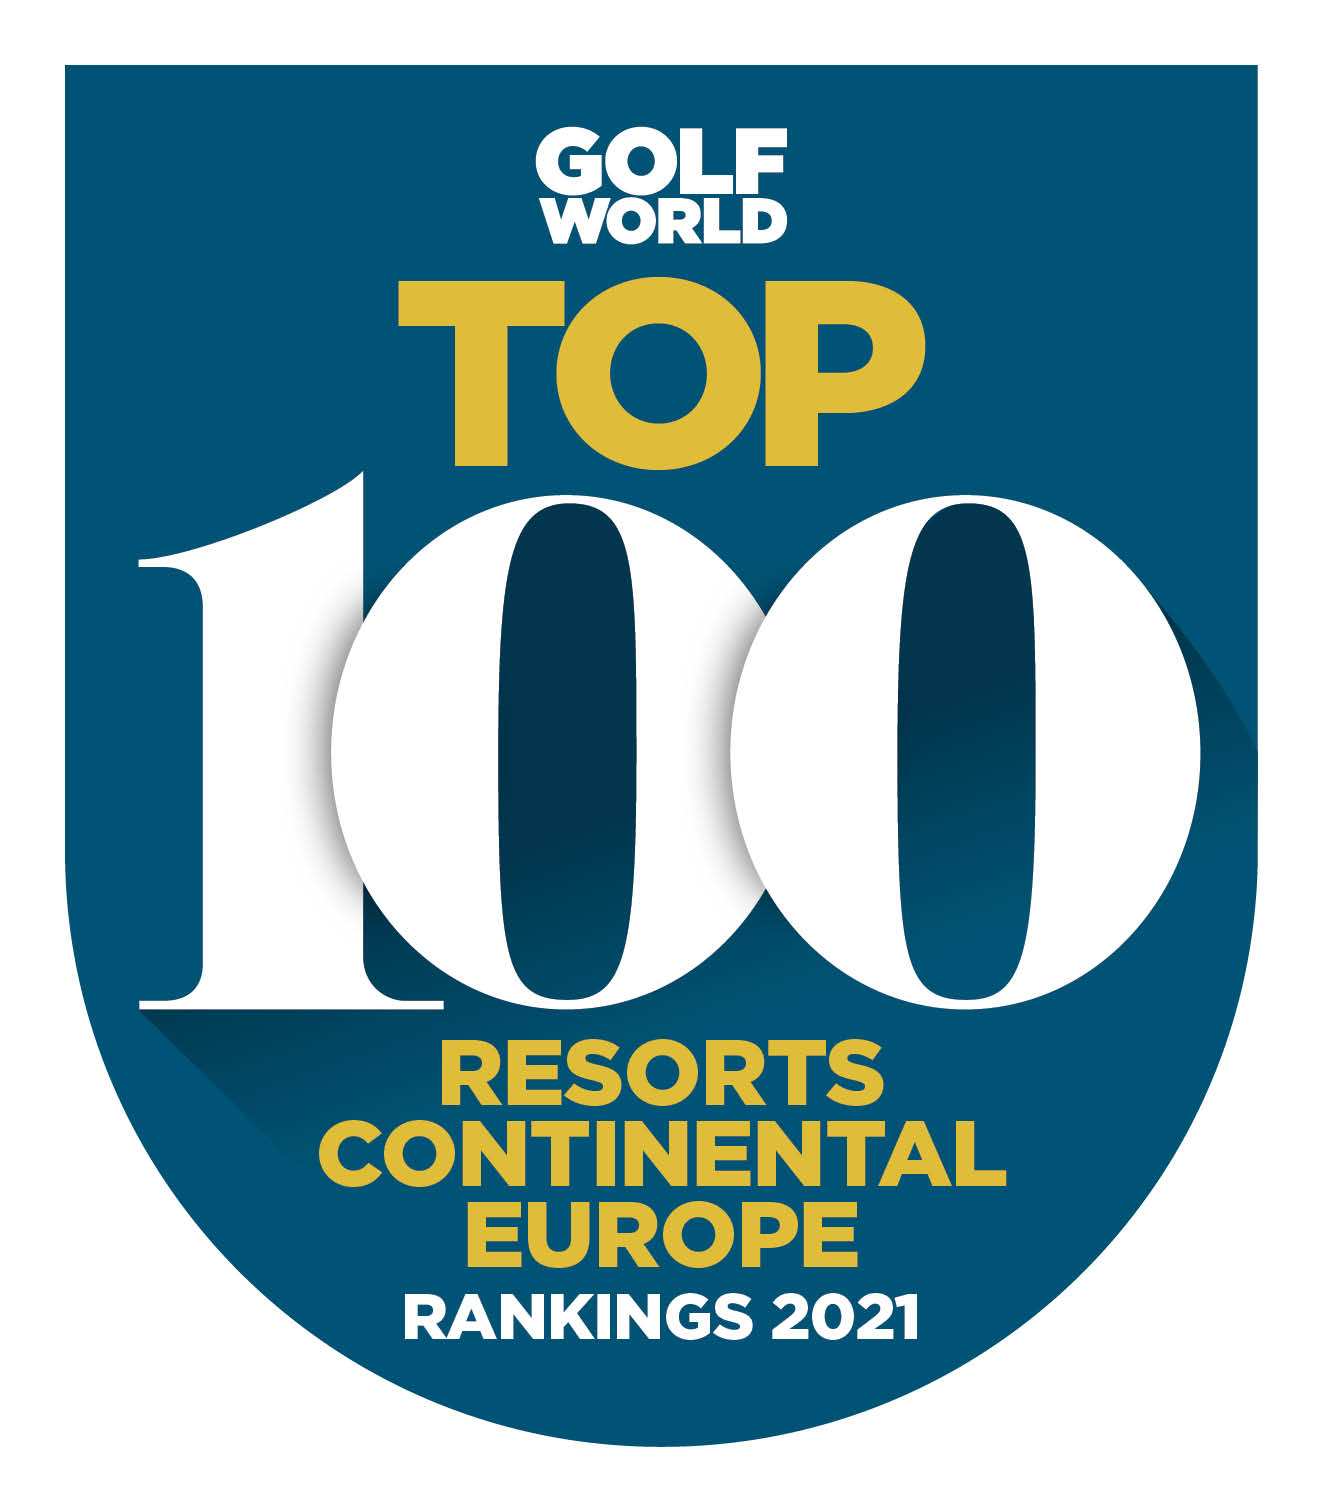 Top 100 RESORTS for Continental Europe 2021